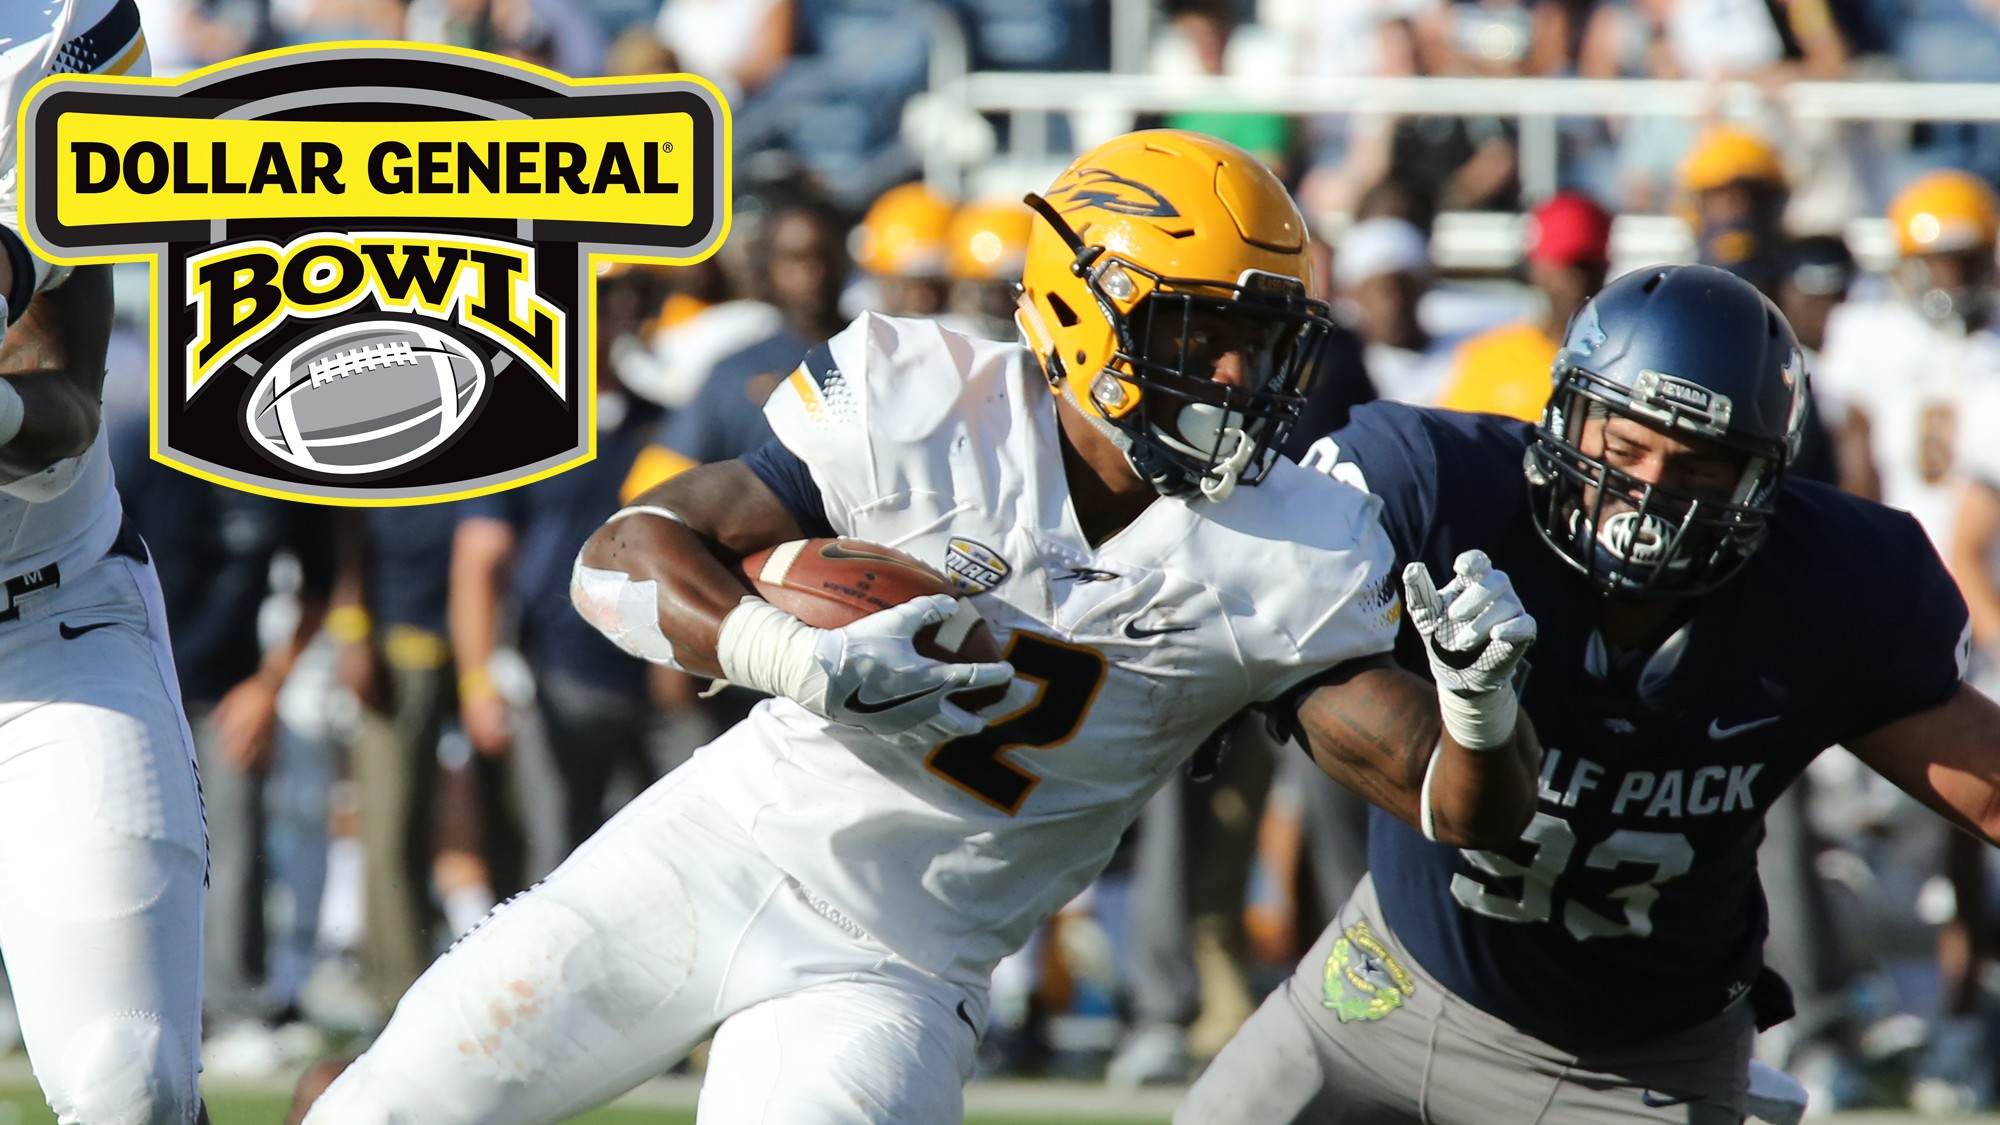 Toledo Faces Appalachian State In The Dollar General Bowl on Dec  23